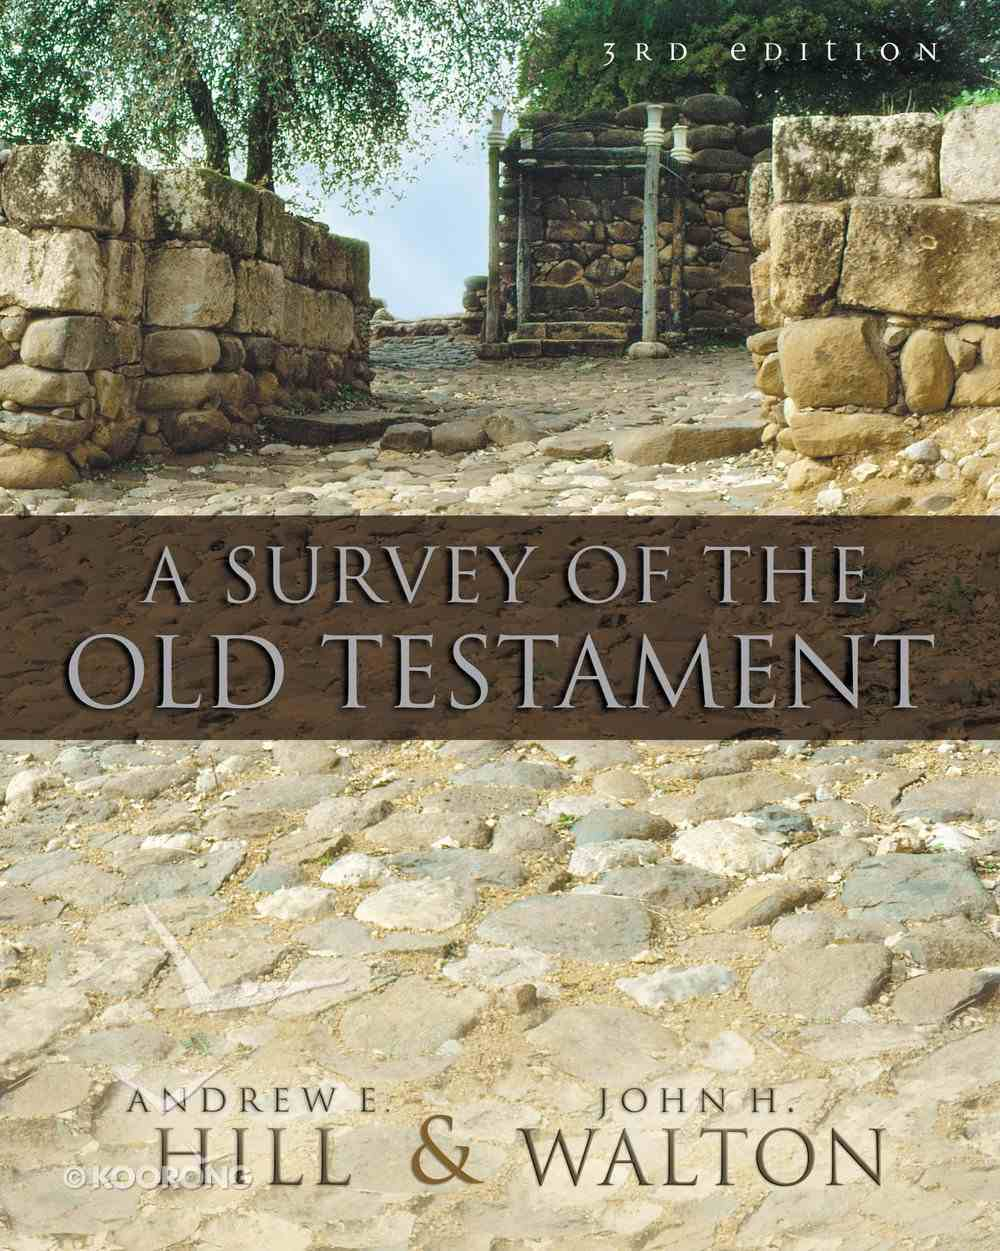 A Survey of the Old Testament (Zondervan Academic Course Dvd Study Series) eBook